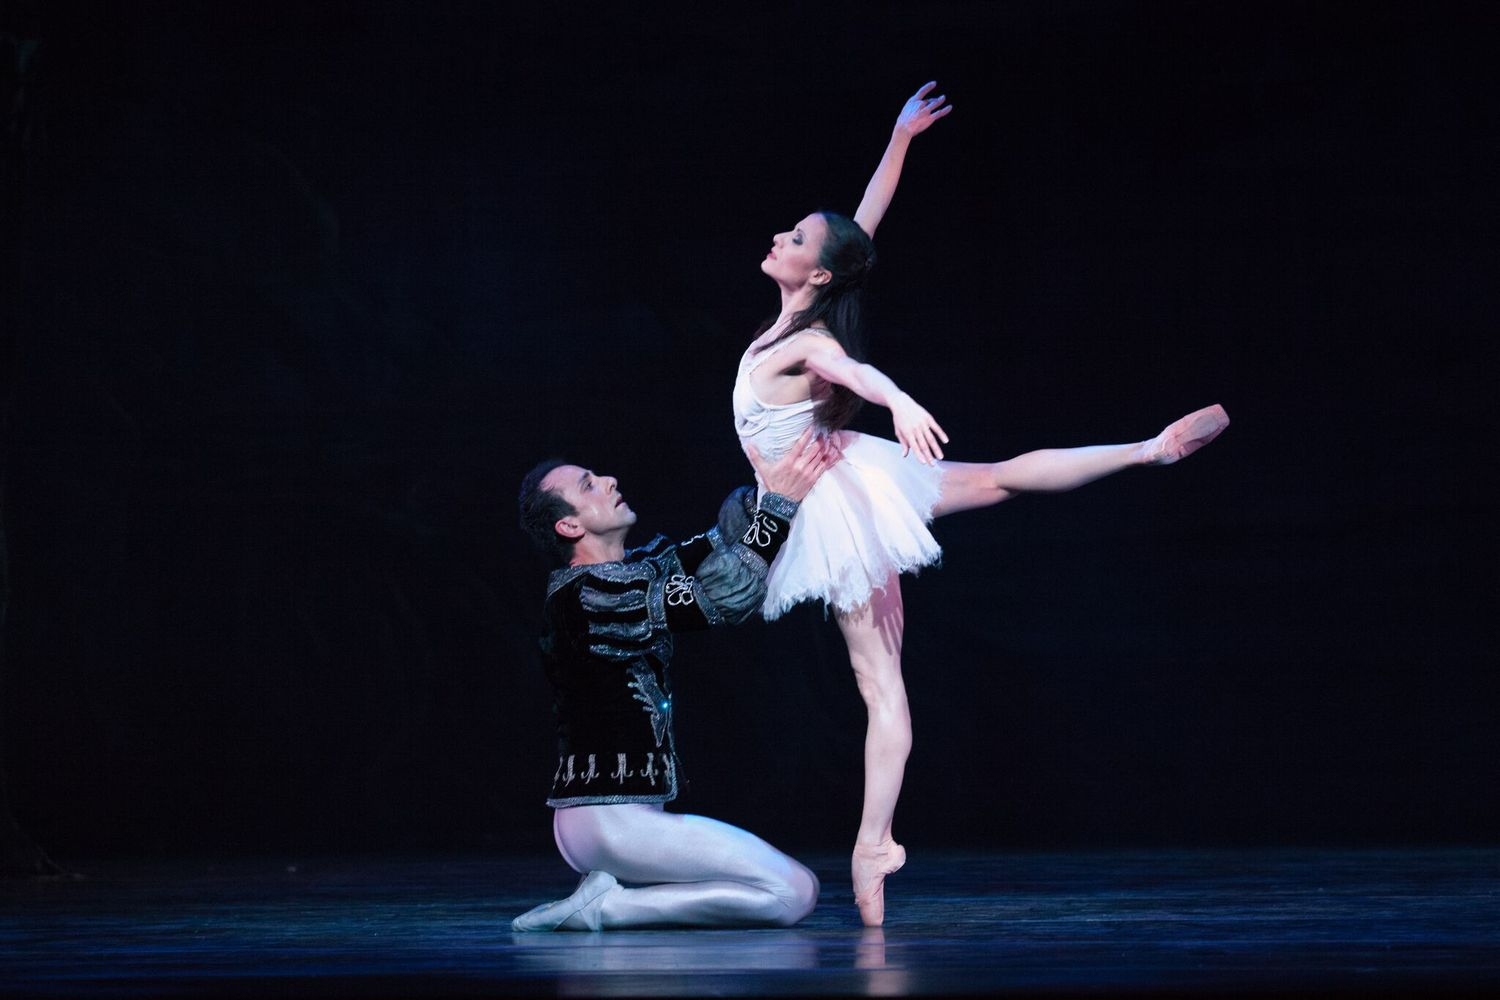 BWW Review: Milwaukee Ballet's SWAN LAKE is Streamlined & Sublime